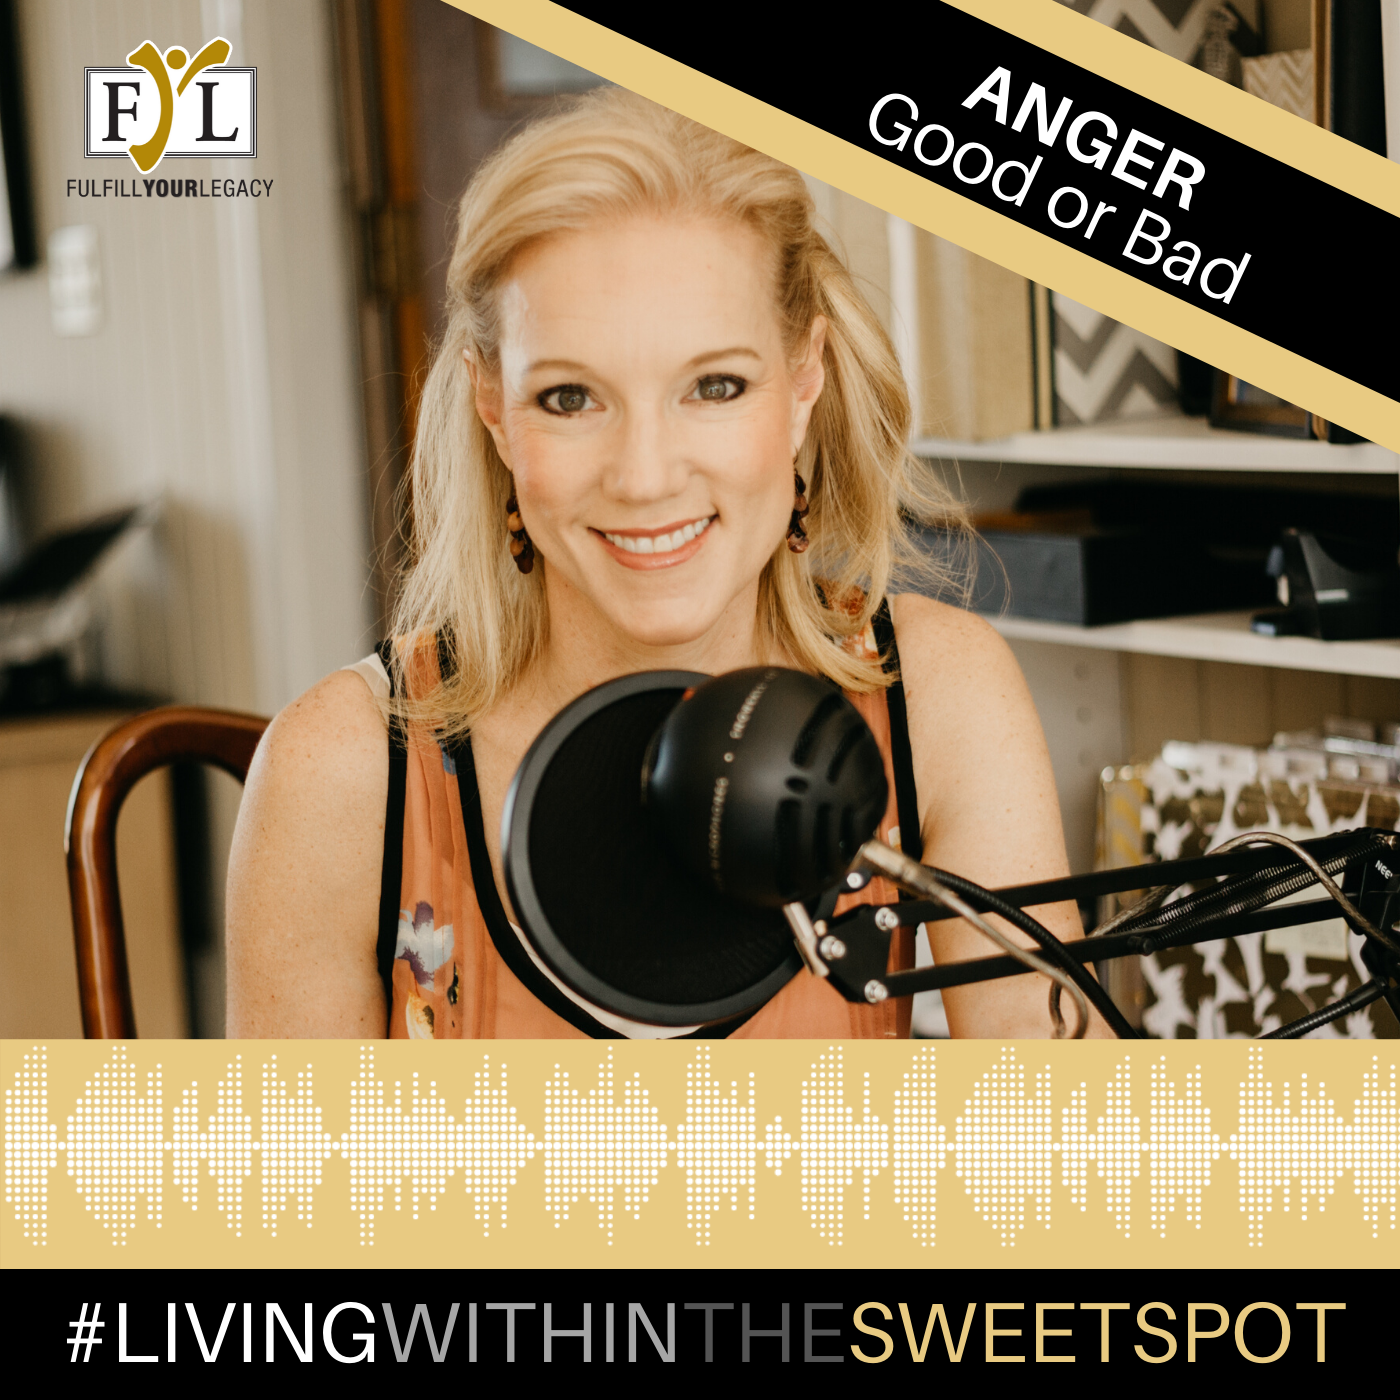 Living within the Sweet Spot Podcast - Anger, Good or Bad